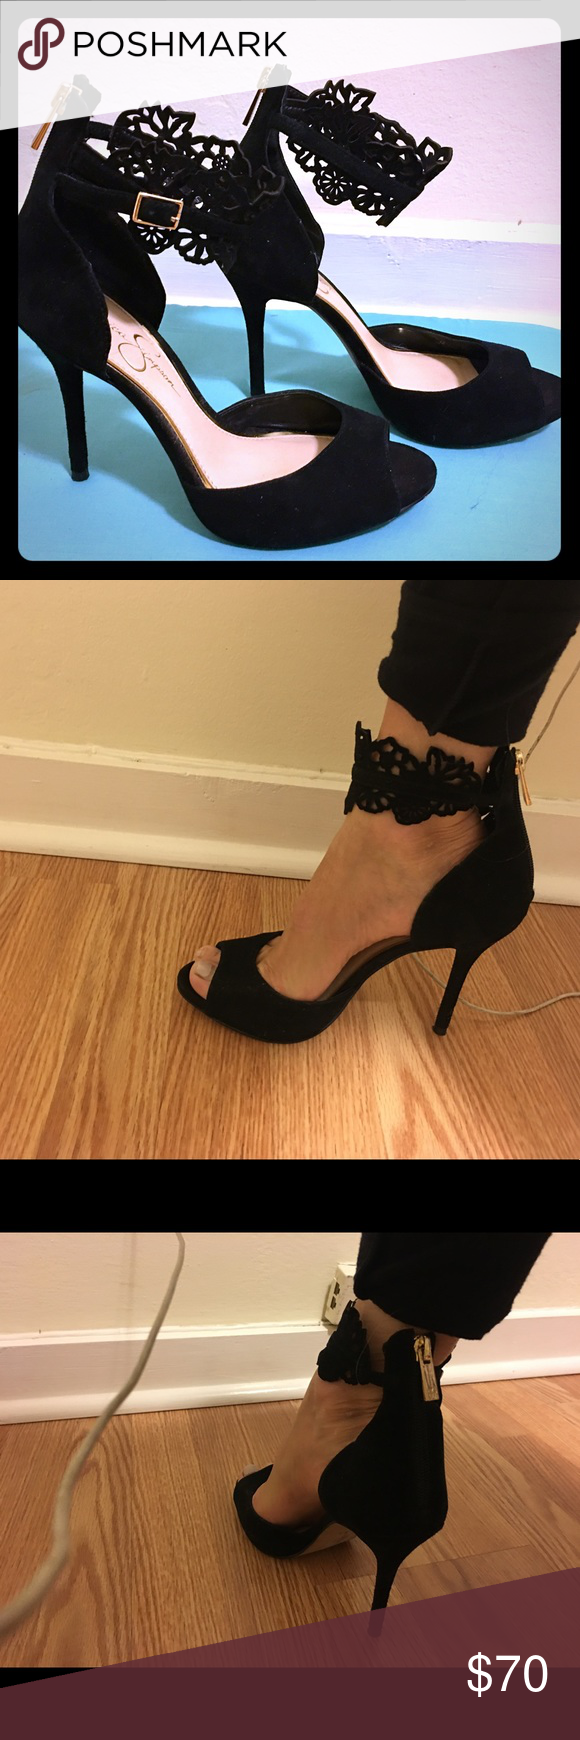 Jessica Simpson black pumps. Jessica Simpson, black pumps.  Super sexy and really comfortable. I used them once for the work Christmas party!!! No regrets :). Jessica Simpson Shoes Heels